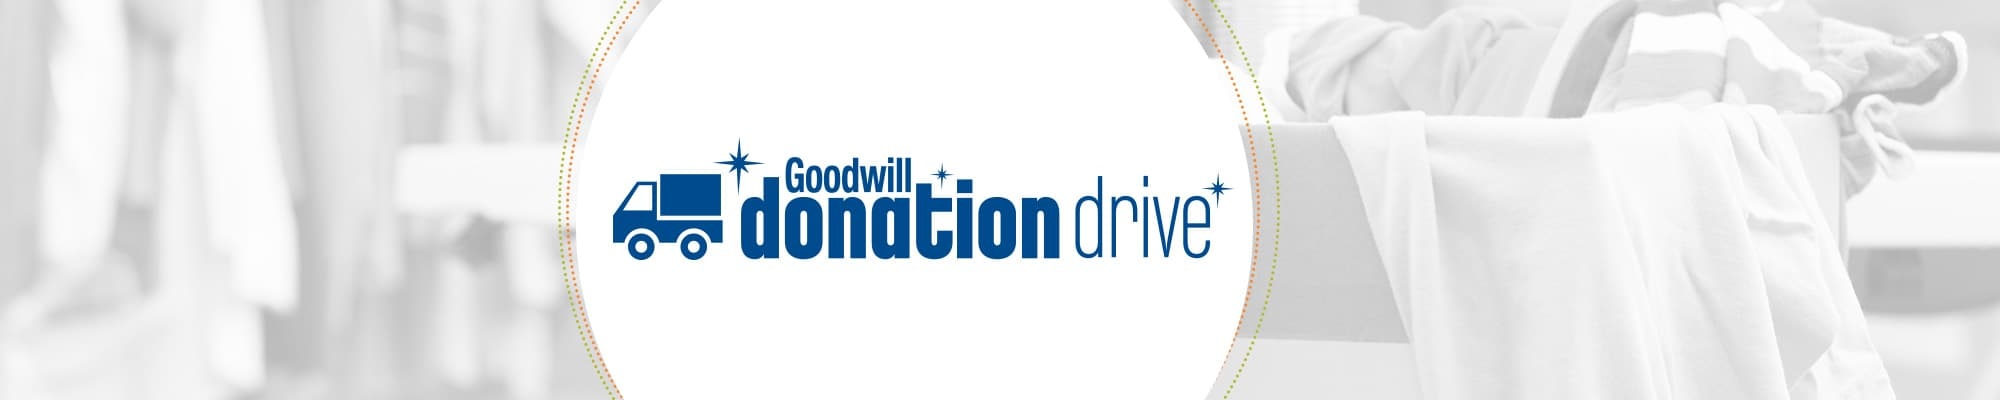 Donation Companies That Pick Up Host A Corporate Donation Drive Goodwill Of Central And Northern